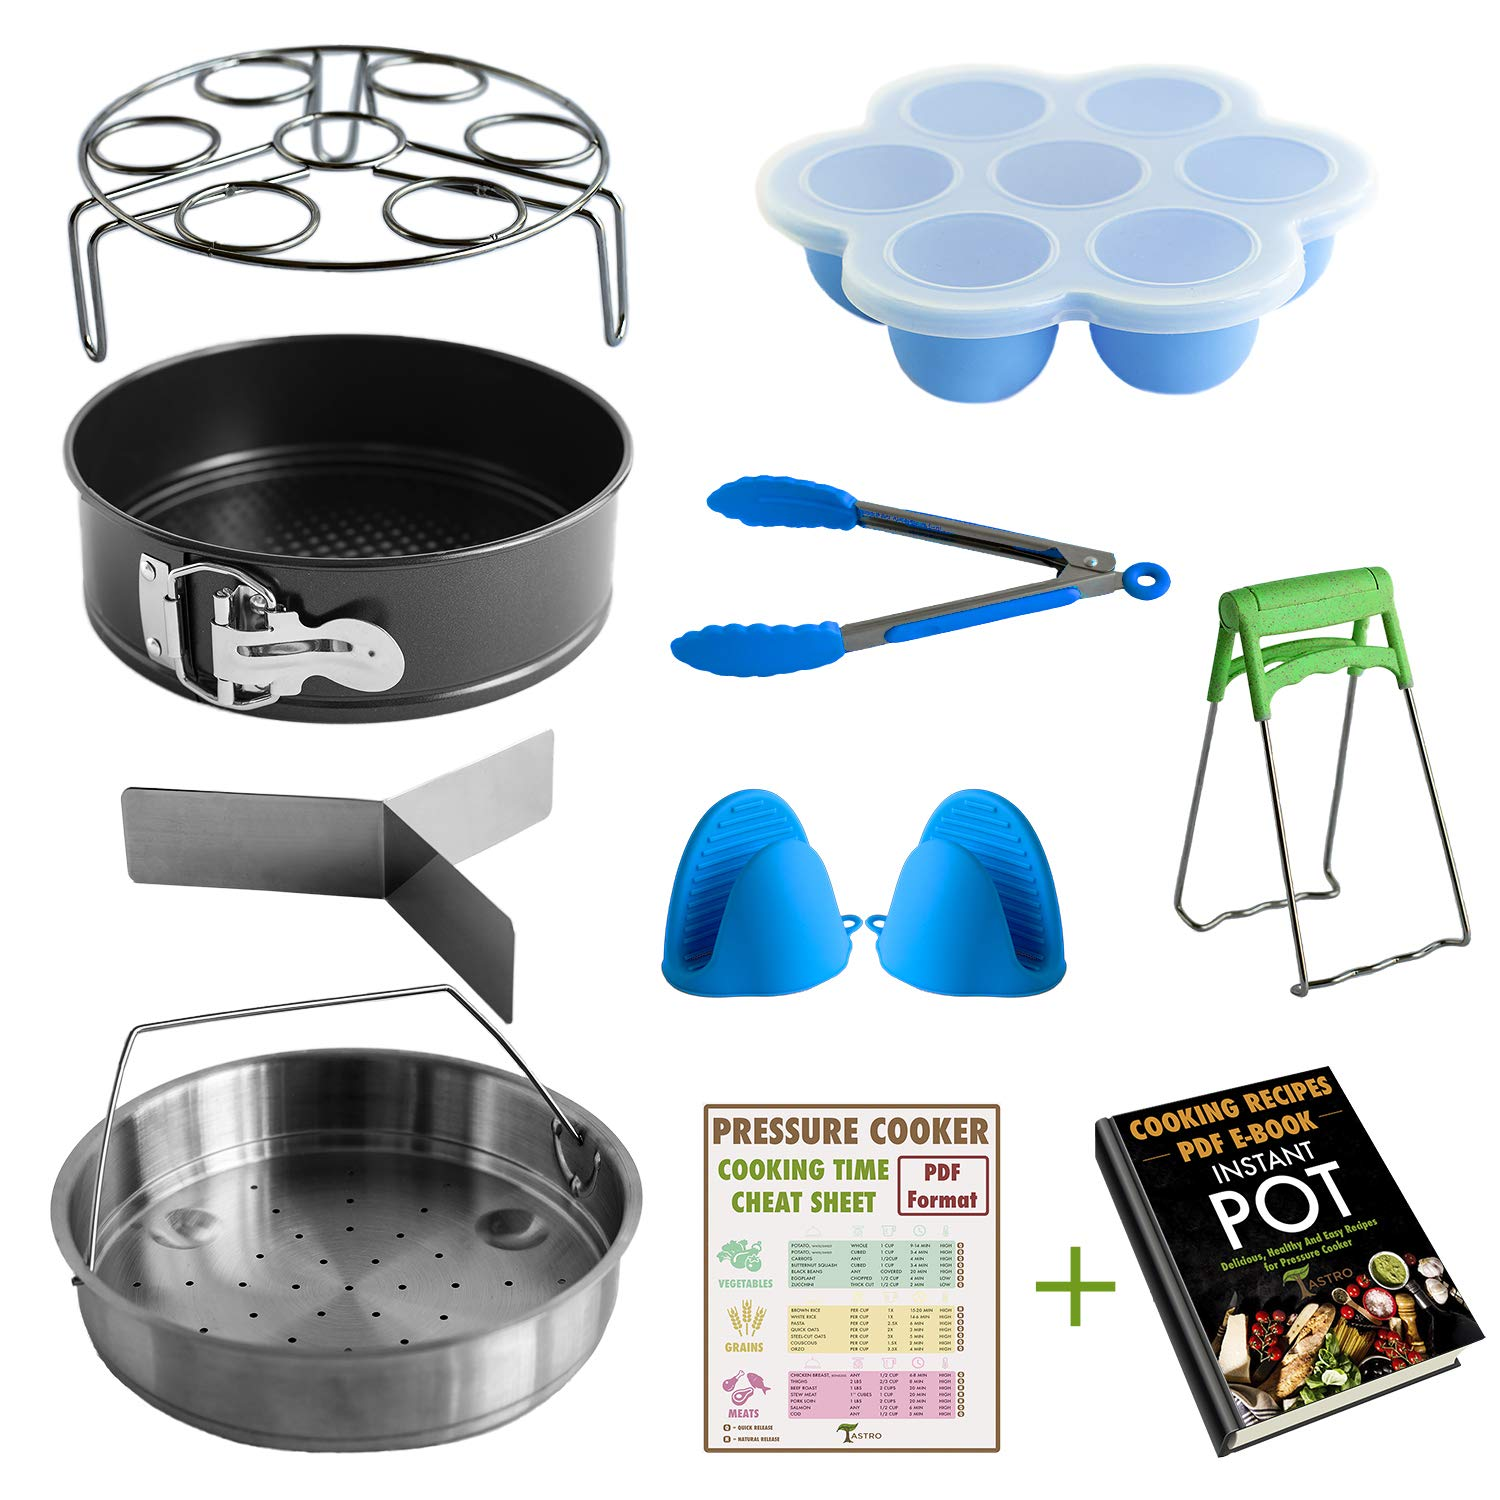 Pressure Cooker Accessories Set Compatible with Instant Pot 5,6,8 Qt with Steamer Basket, 7 Springform Pan, Egg Steamer Rack, Egg Bites Mold, Oven Silicone Mitts, Food Kitchen Tongs, Bowl Clip